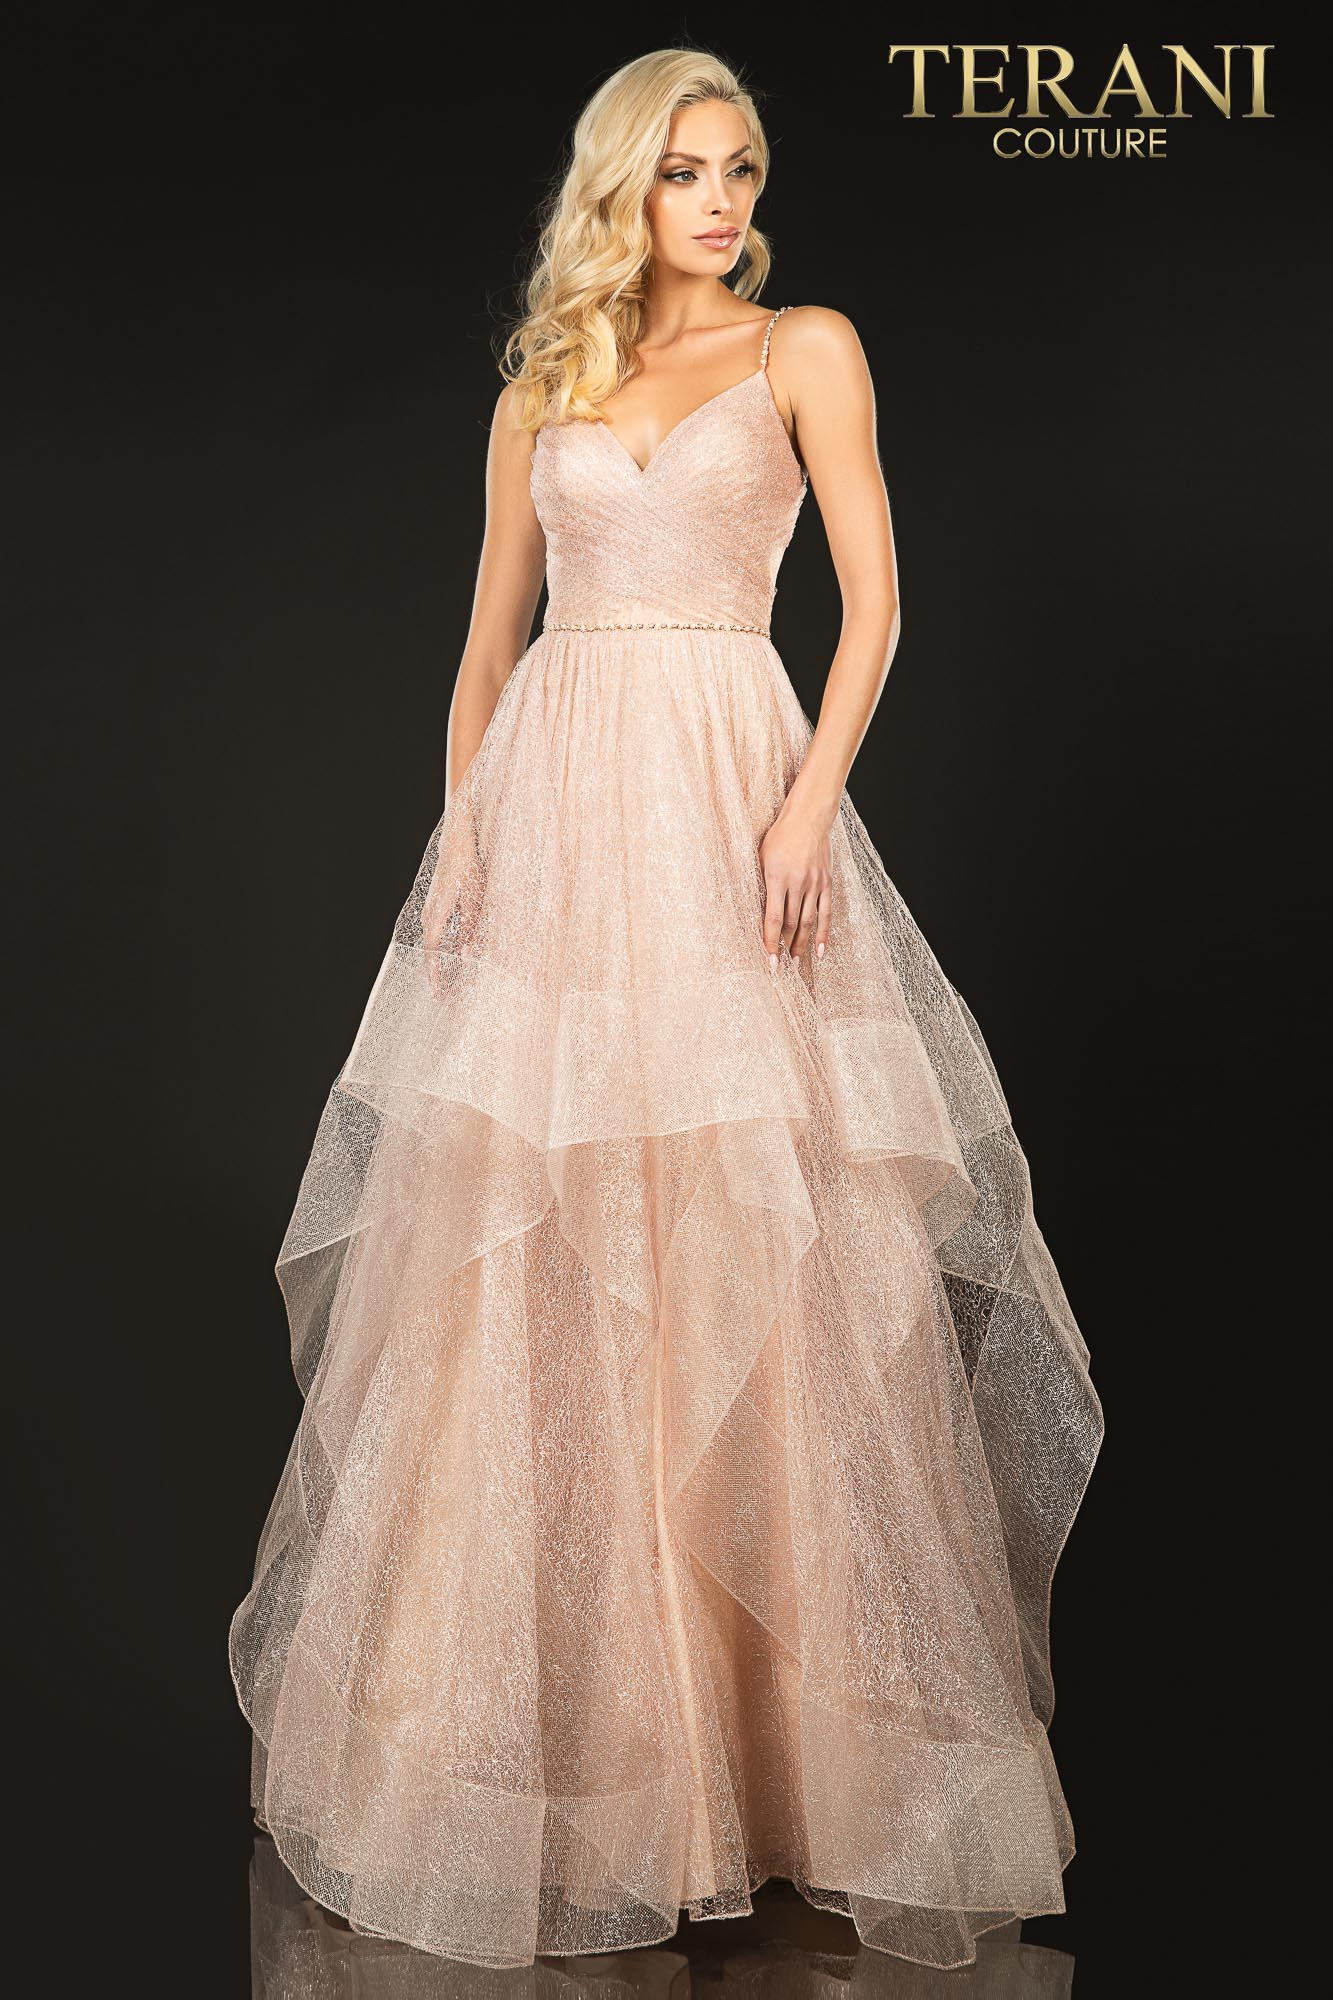 Terani Couture Blush Long tulle prom ball gown – Style number 2011P1213